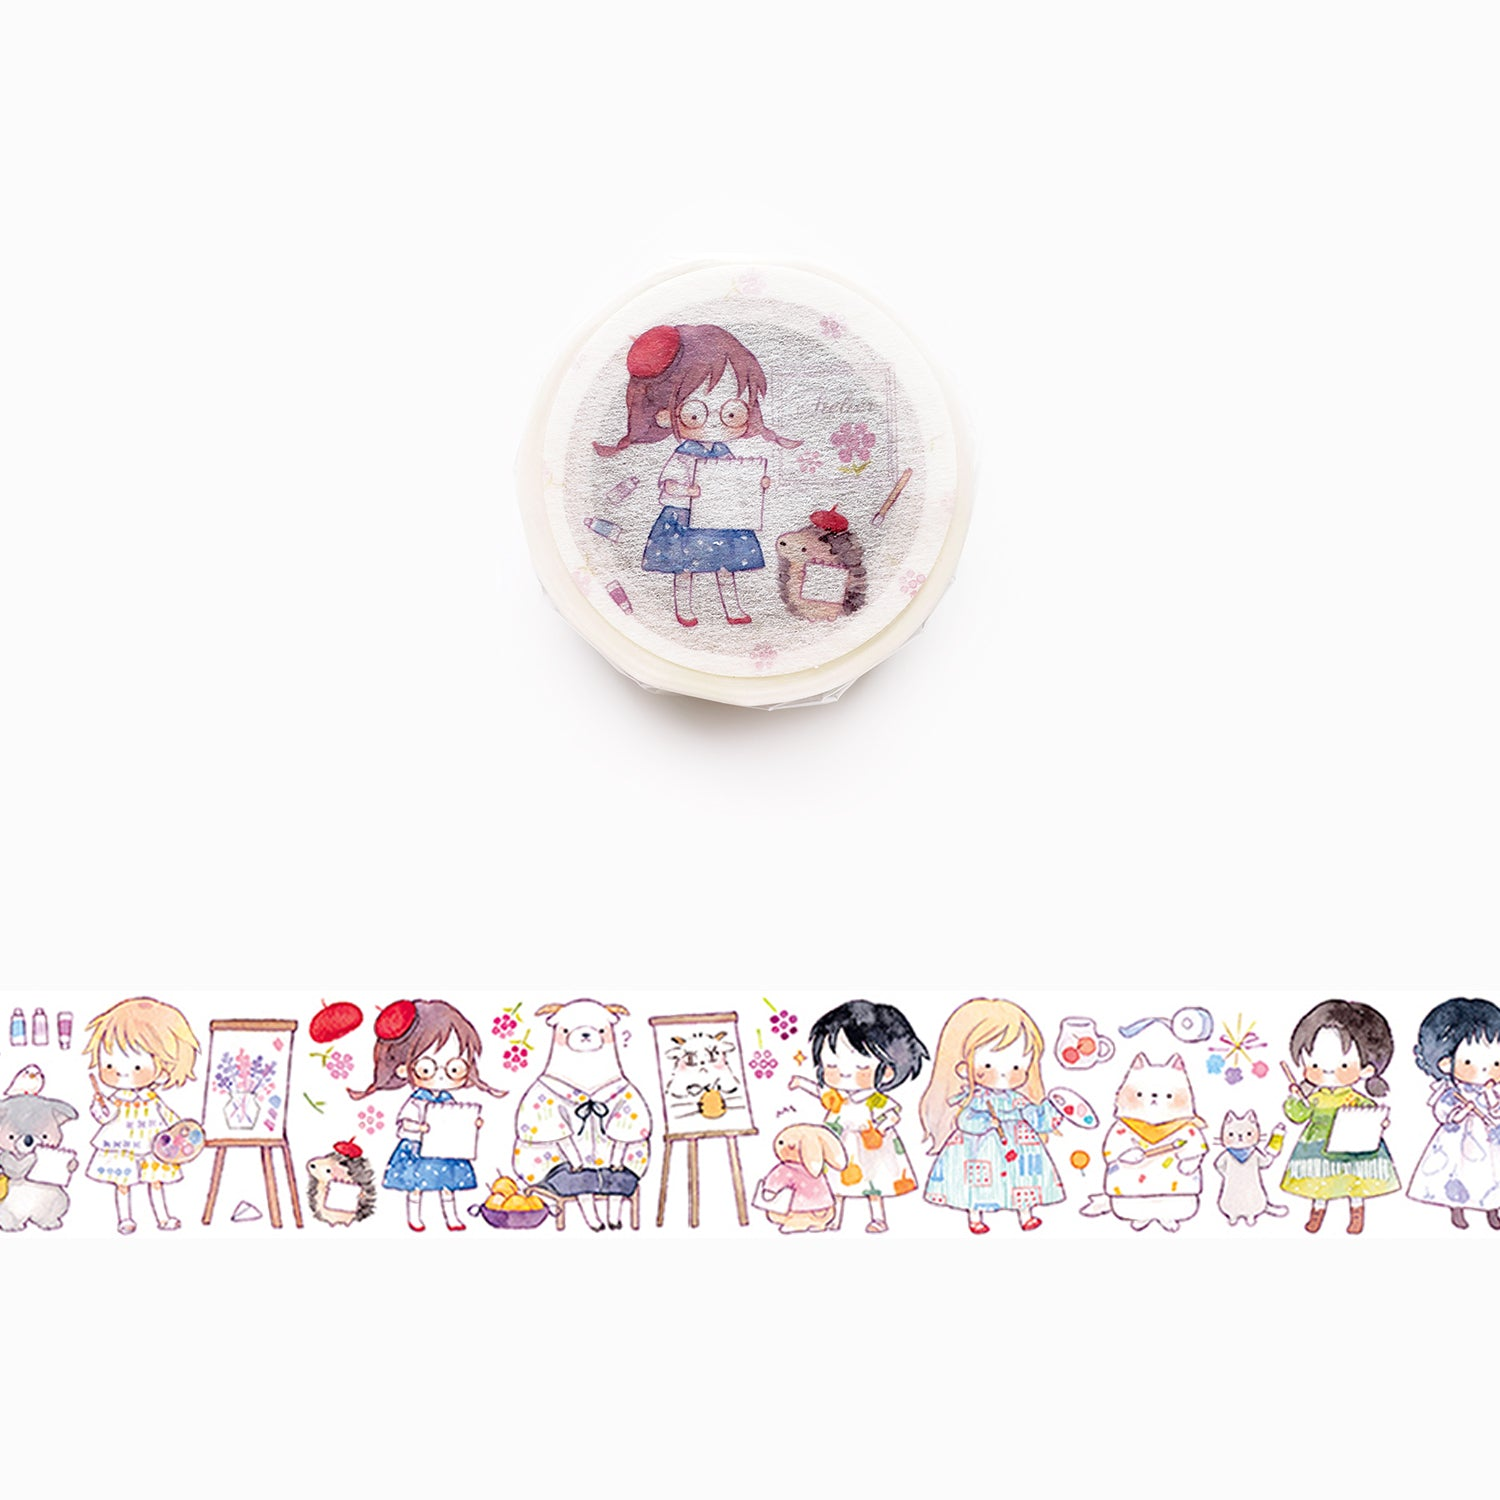 Hayama Washi Tape: Atelier Girls